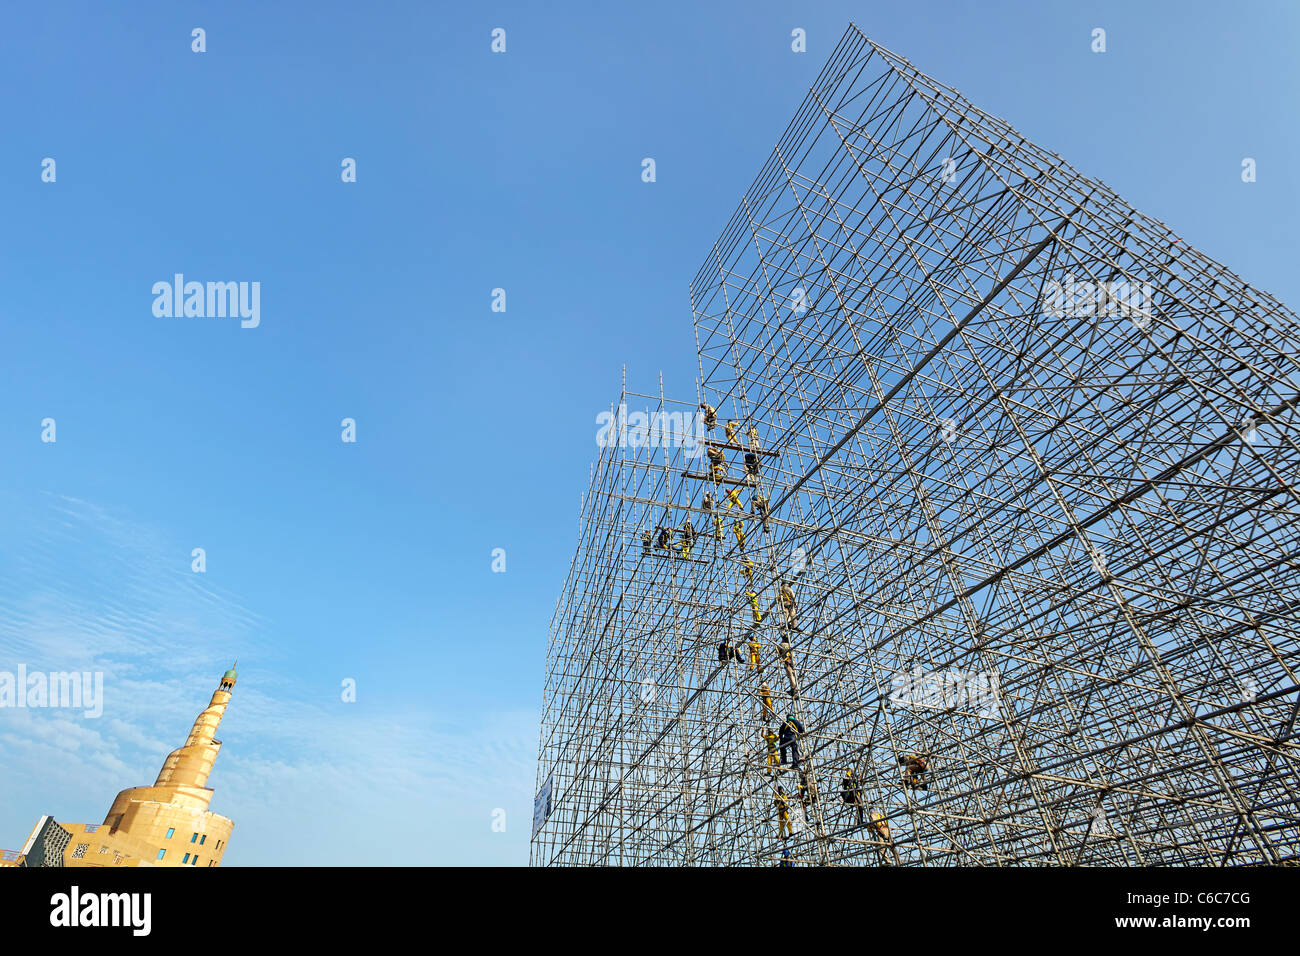 Qatar, Middle East, Arabian Peninsula, Doha, Scaffolding construction being erected in Central Doha - Stock Image